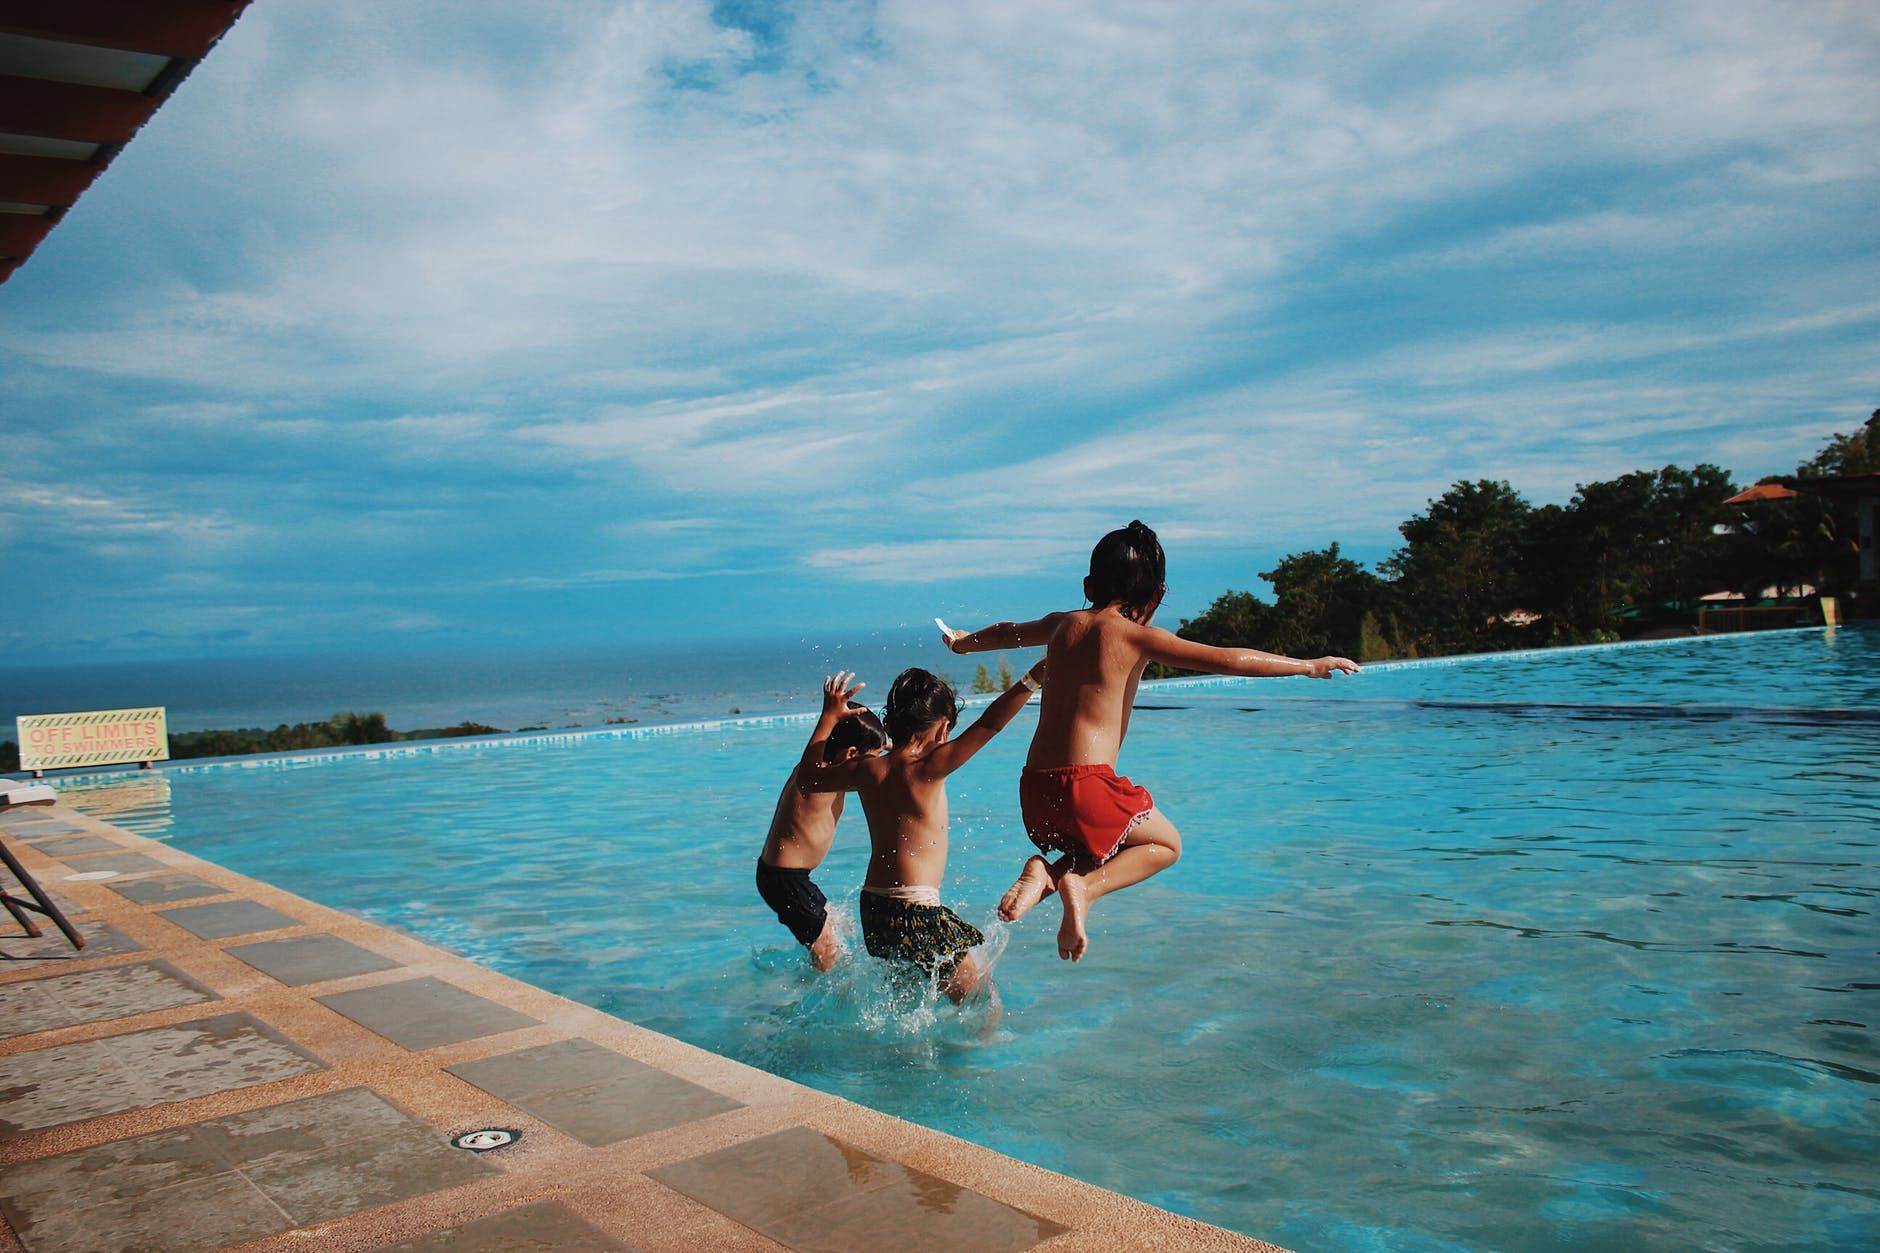 Three boys jumping into the pool